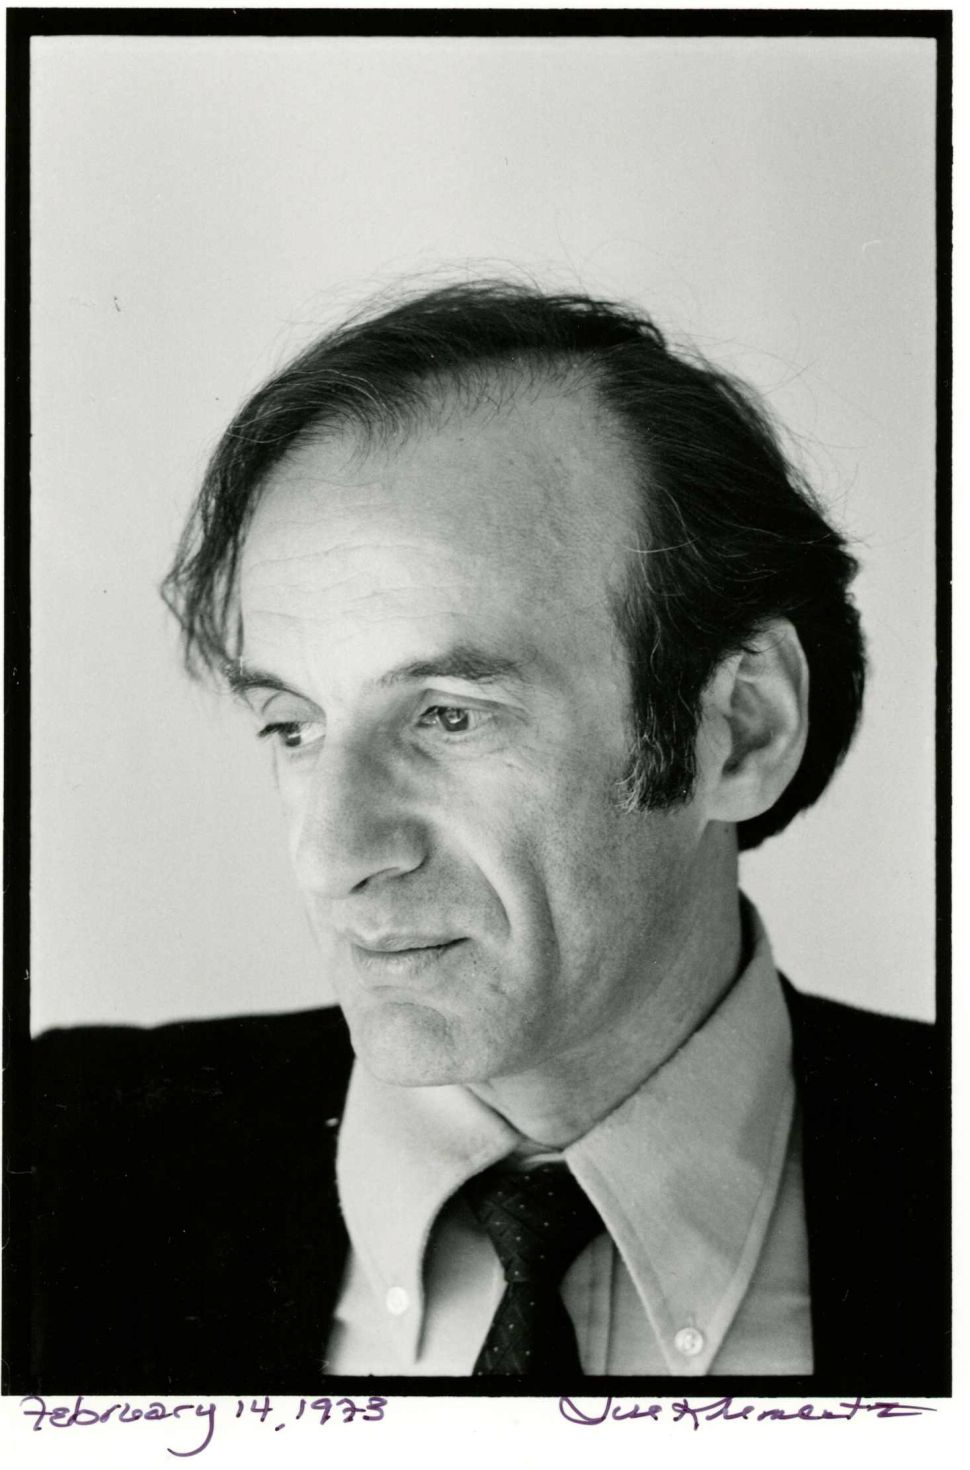 Elie Wiesel photographed by Jill Krementz on February 14, 1973 in his office on Central Park West.